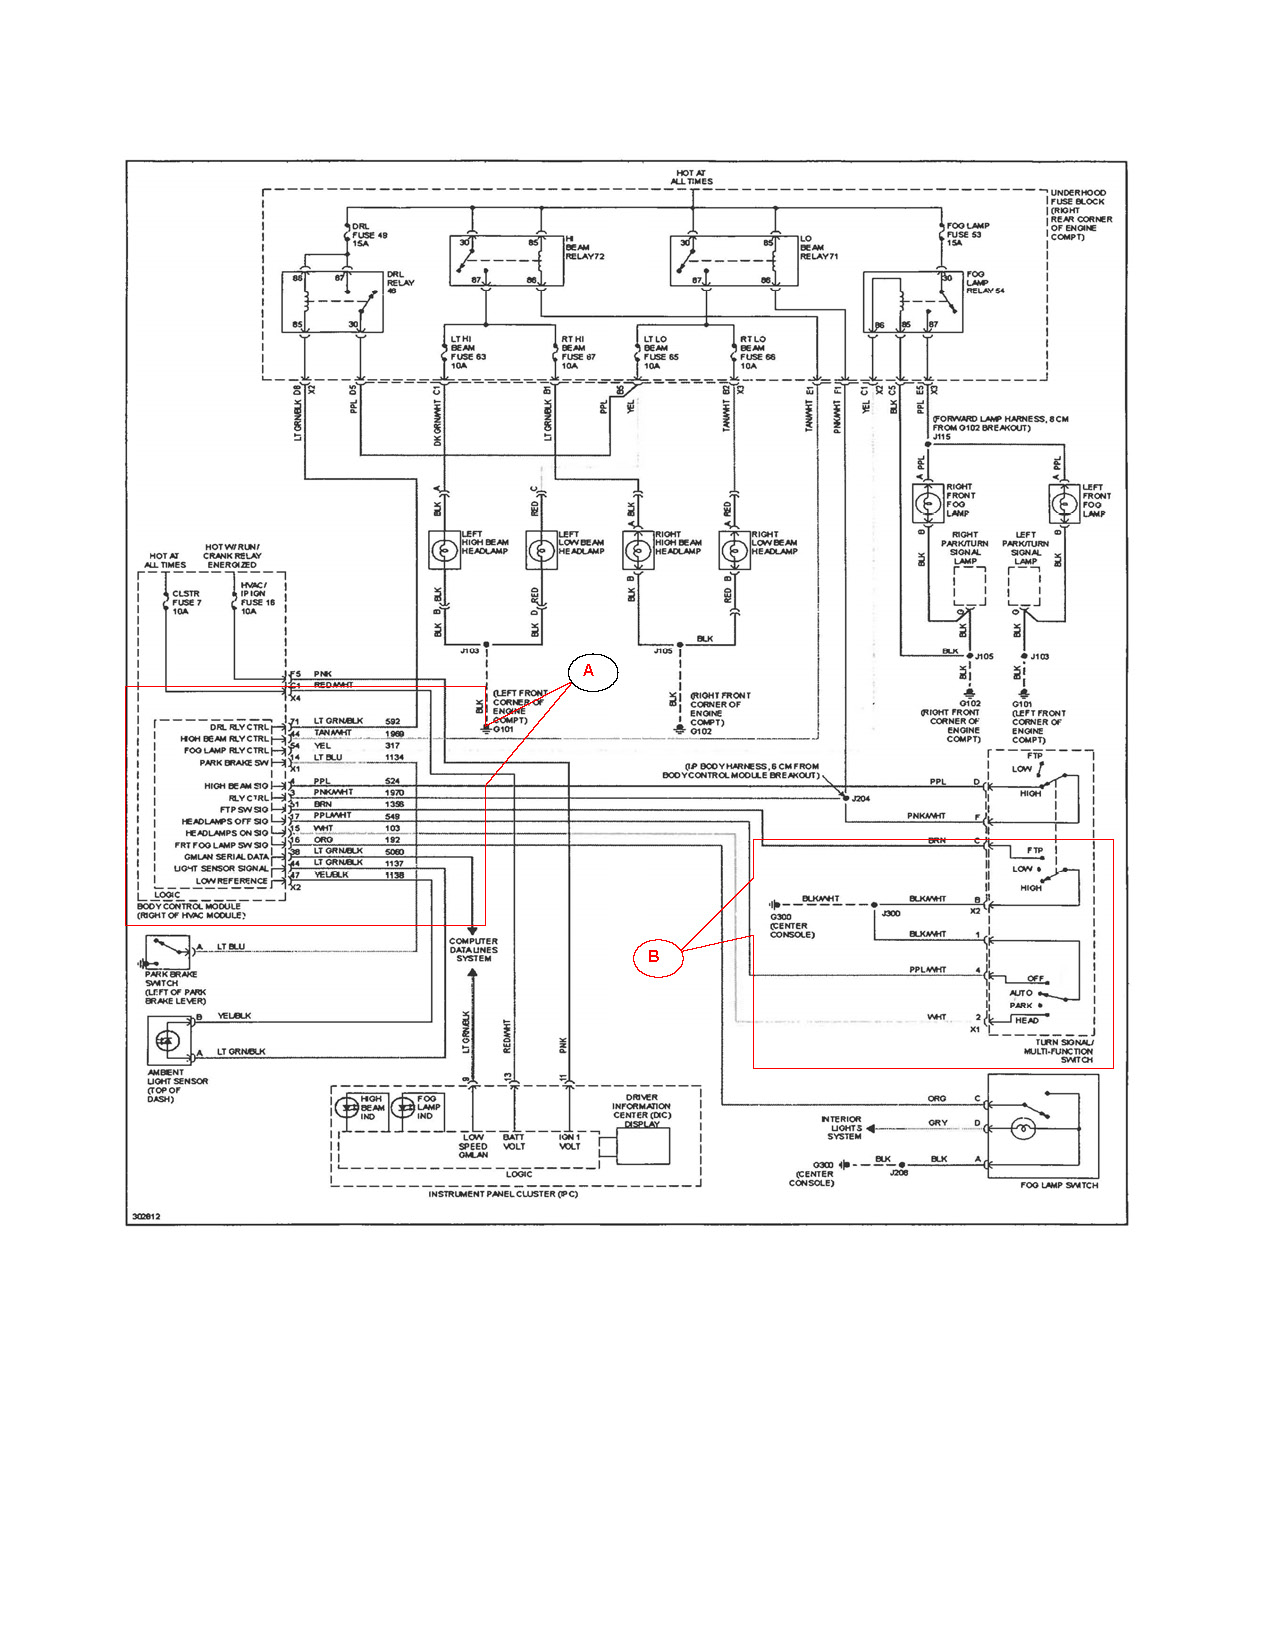 2009 saturn sky fuse diagram schematic diagrams rh ogmconsulting co Saturn  SL2 Fuse Diagram Saturn SL2 Fuse Diagram